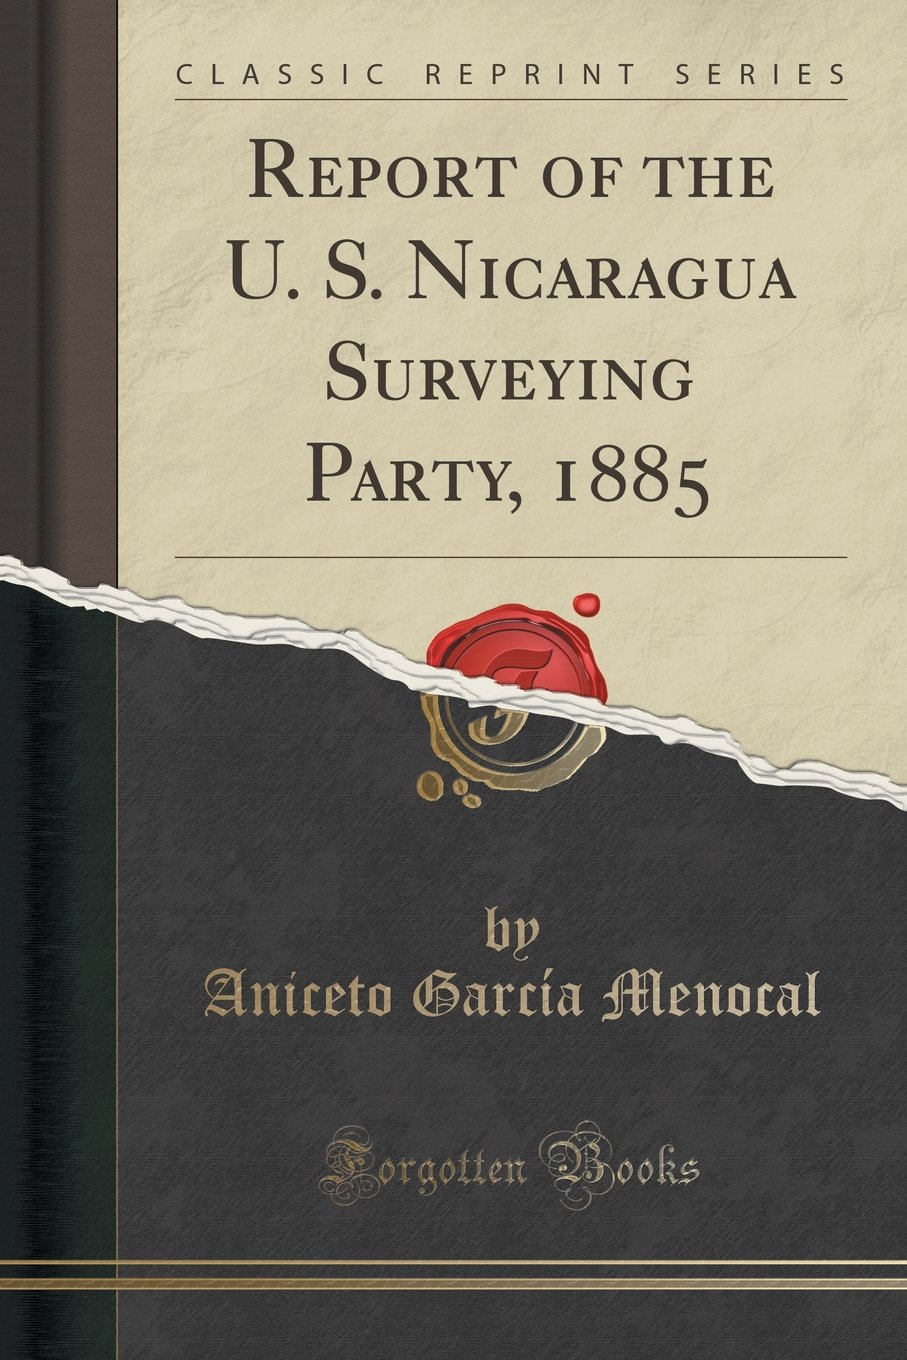 Report of the U. S. Nicaragua Surveying Party, 1885 (Classic Reprint)